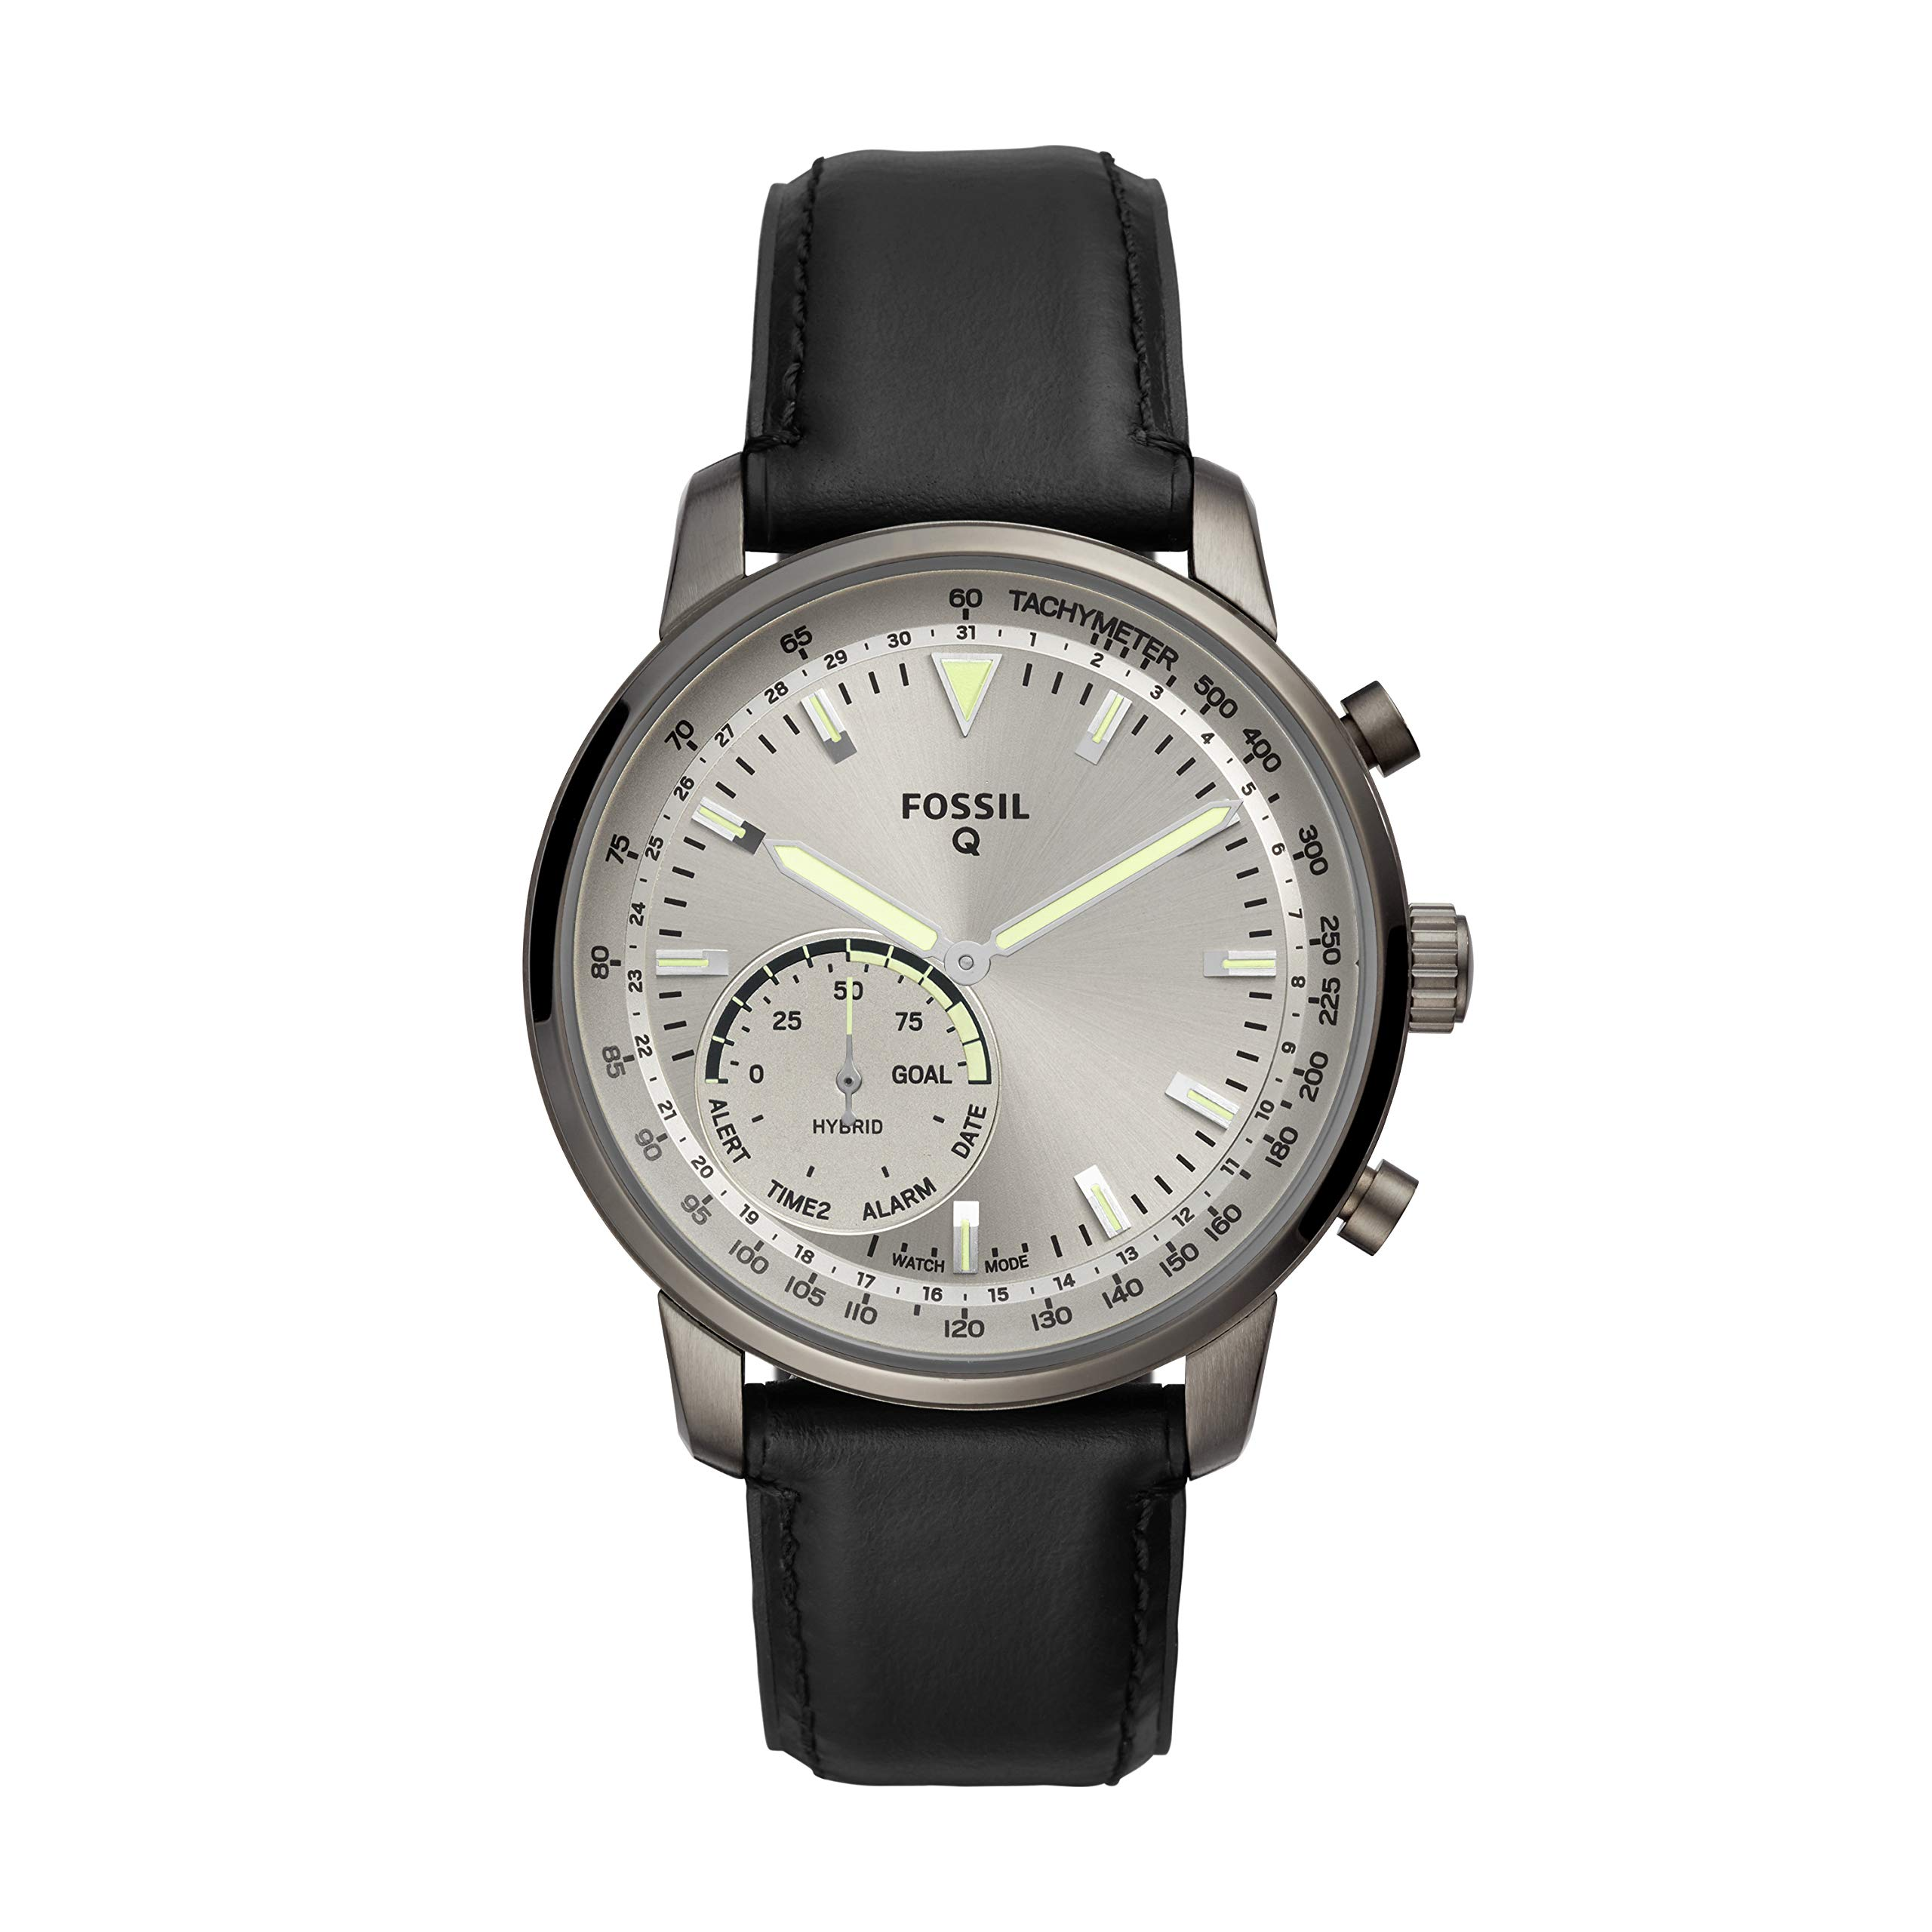 Fossil Men's Hybrid Smartwatch Stainless Steel Watch with Leather Strap, Black, 22 (Model: FTW1171)